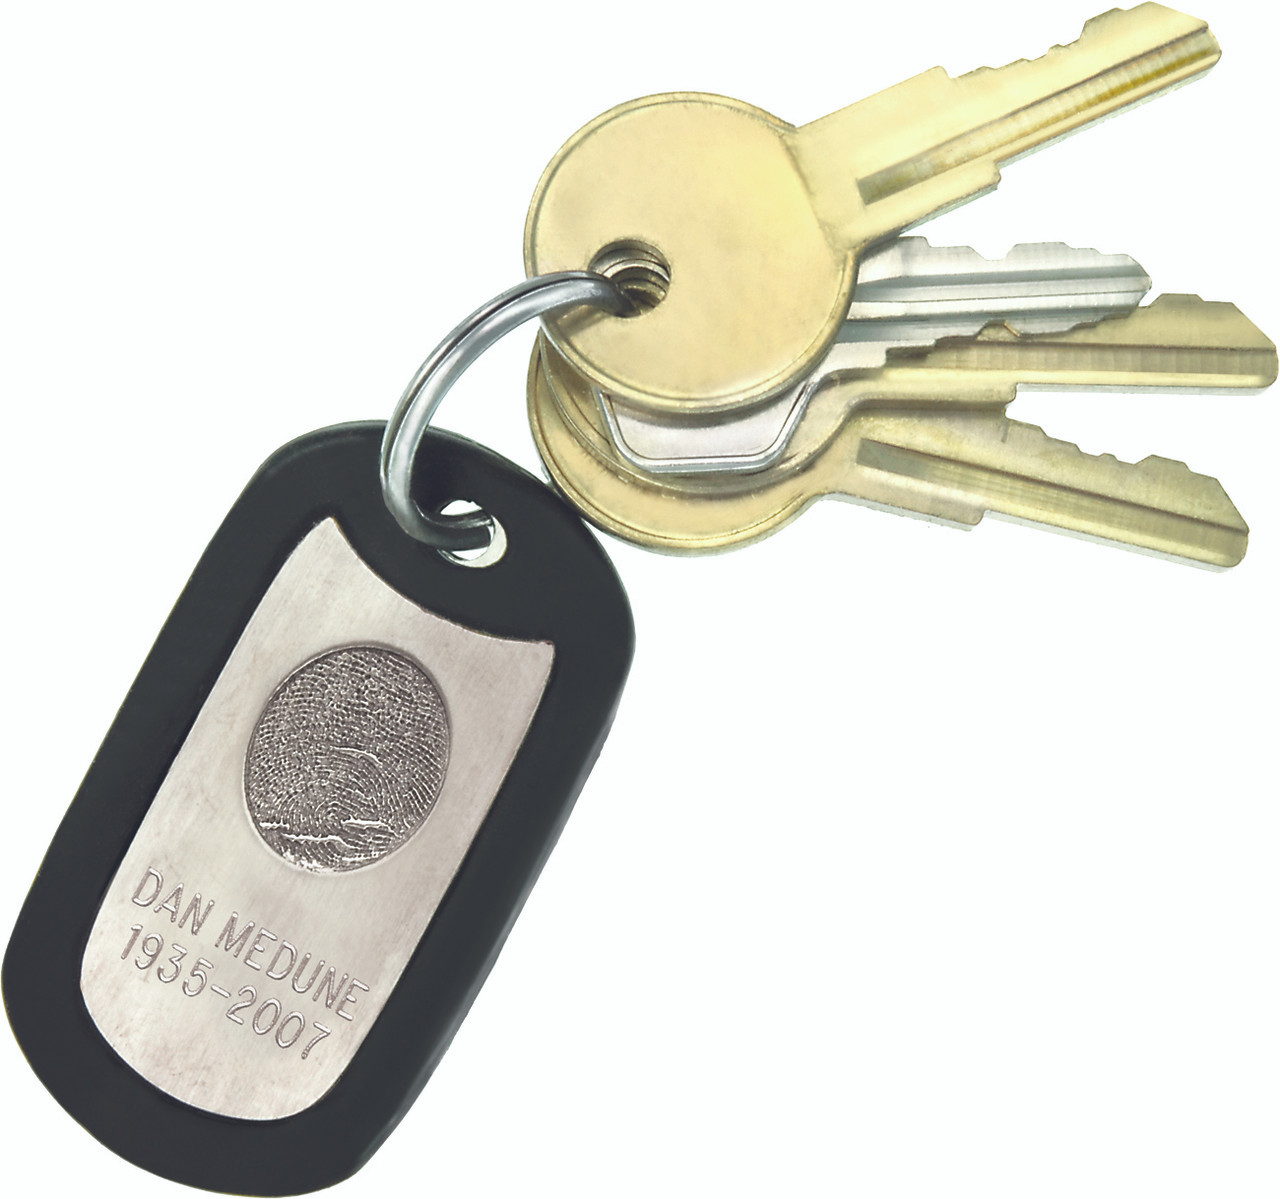 """KeyTags come complete with a black rubber silencer, a 30"""" stainless steel ball chain, and a split ring for holding keys."""